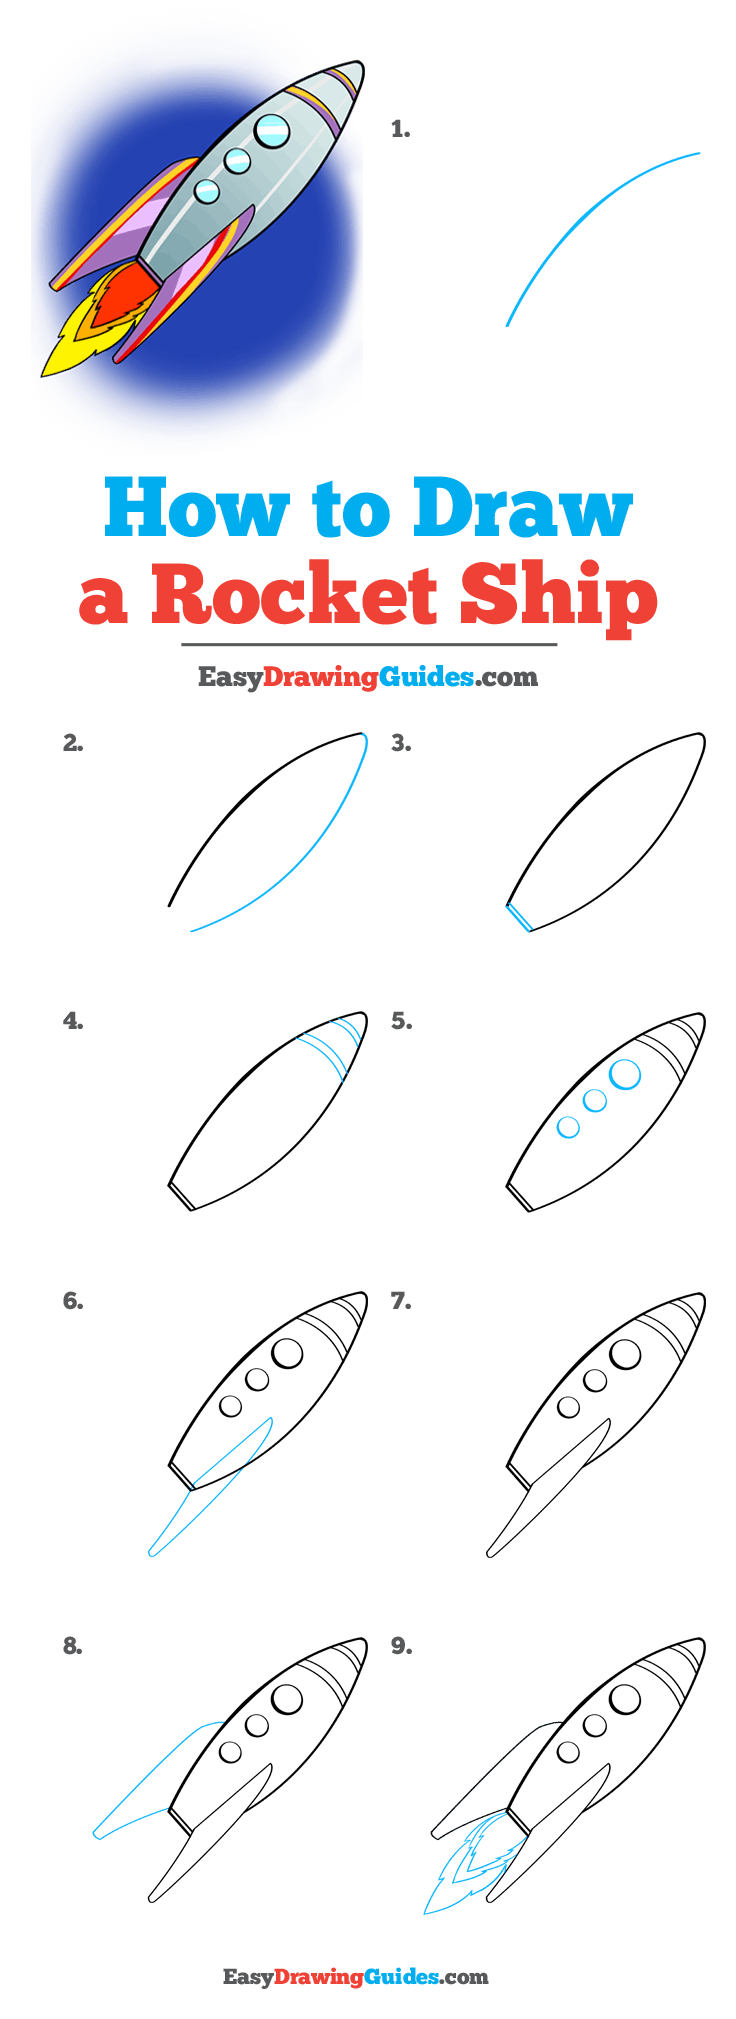 How to Draw Rocket Ship